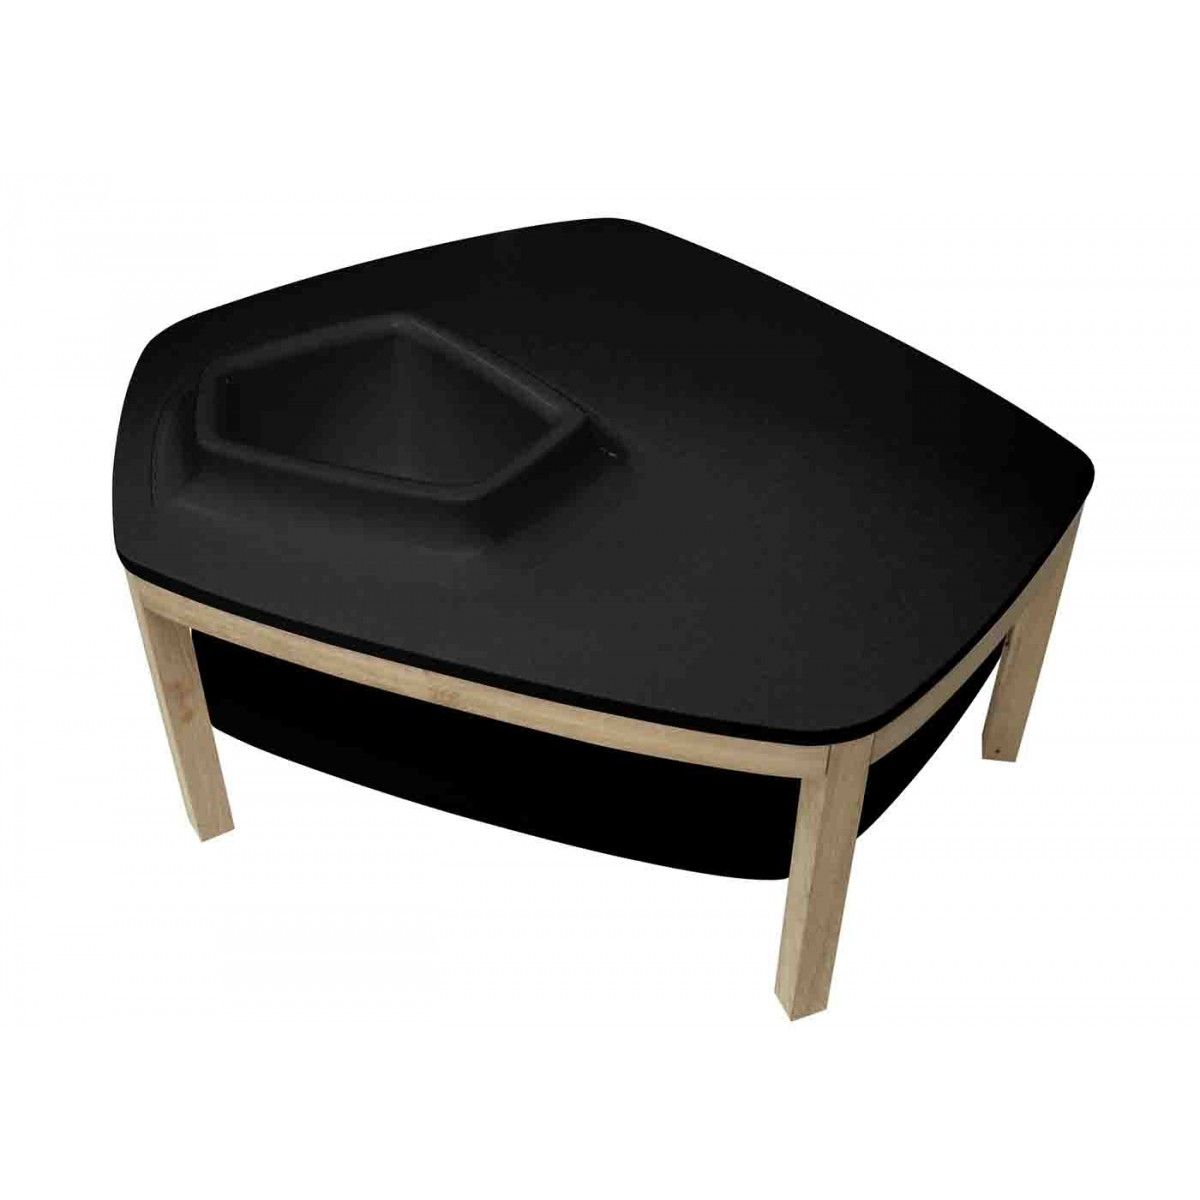 Table basse volcane pied original design avec vasque for Table basse 3 pieds